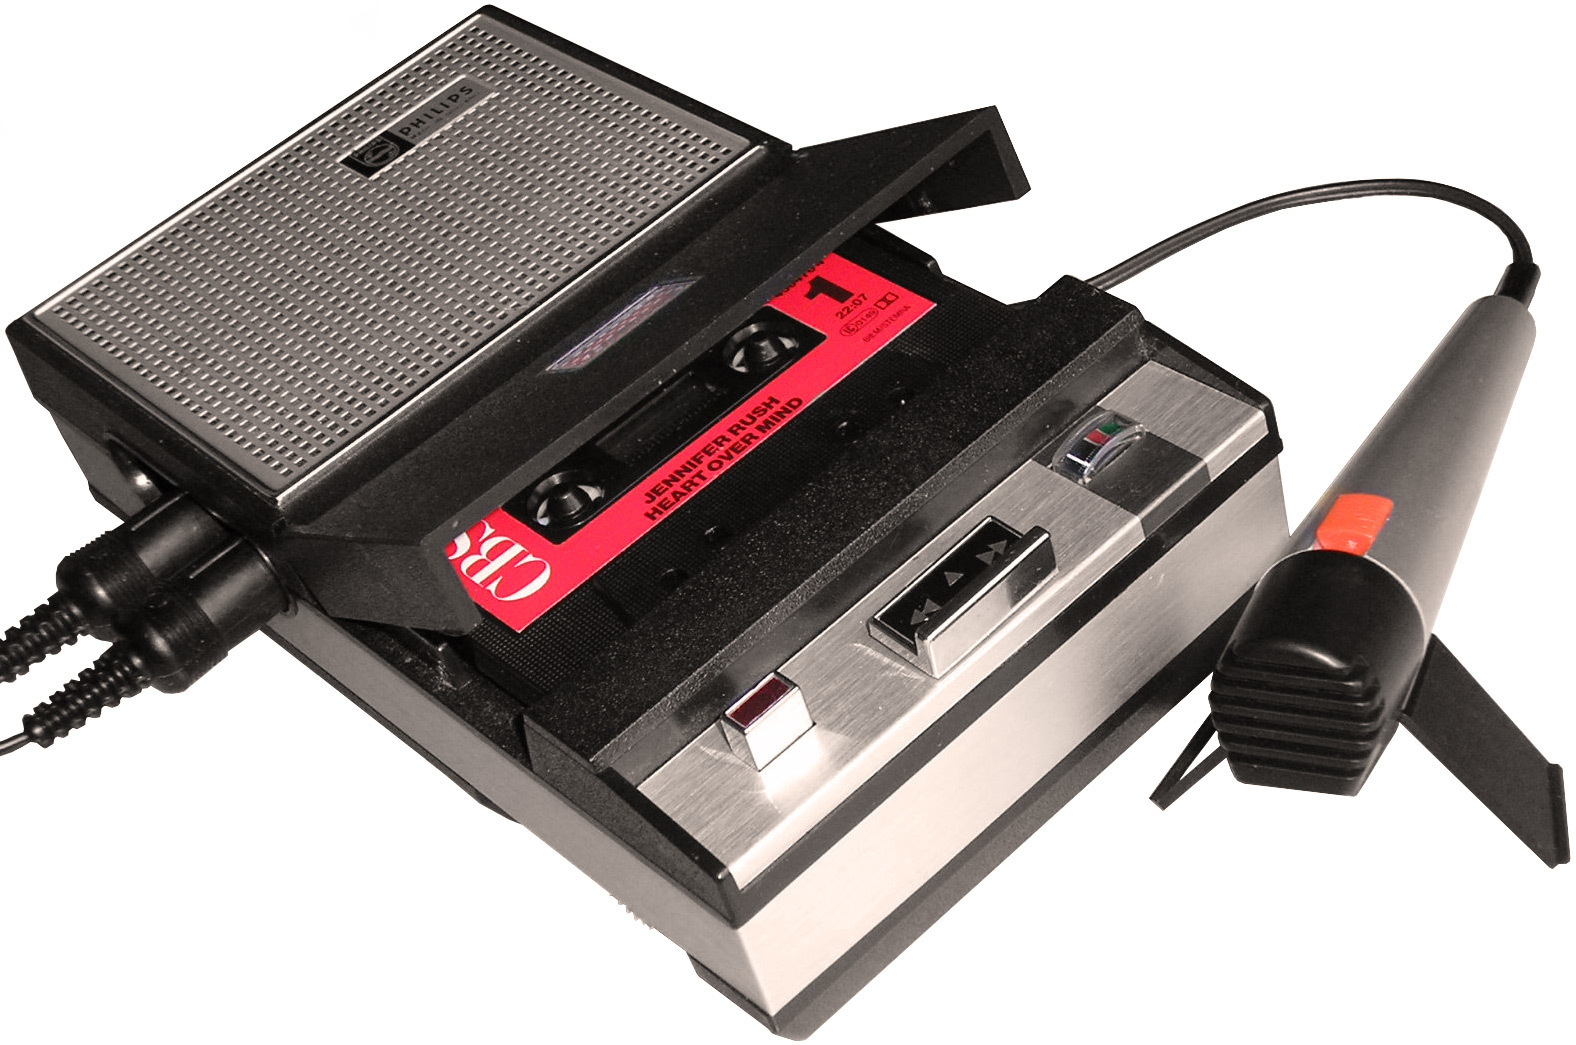 Cassette in a cassette recorder - Image: mib18 at German Wikipedia (CC BY-SA 3.0) (exempted)